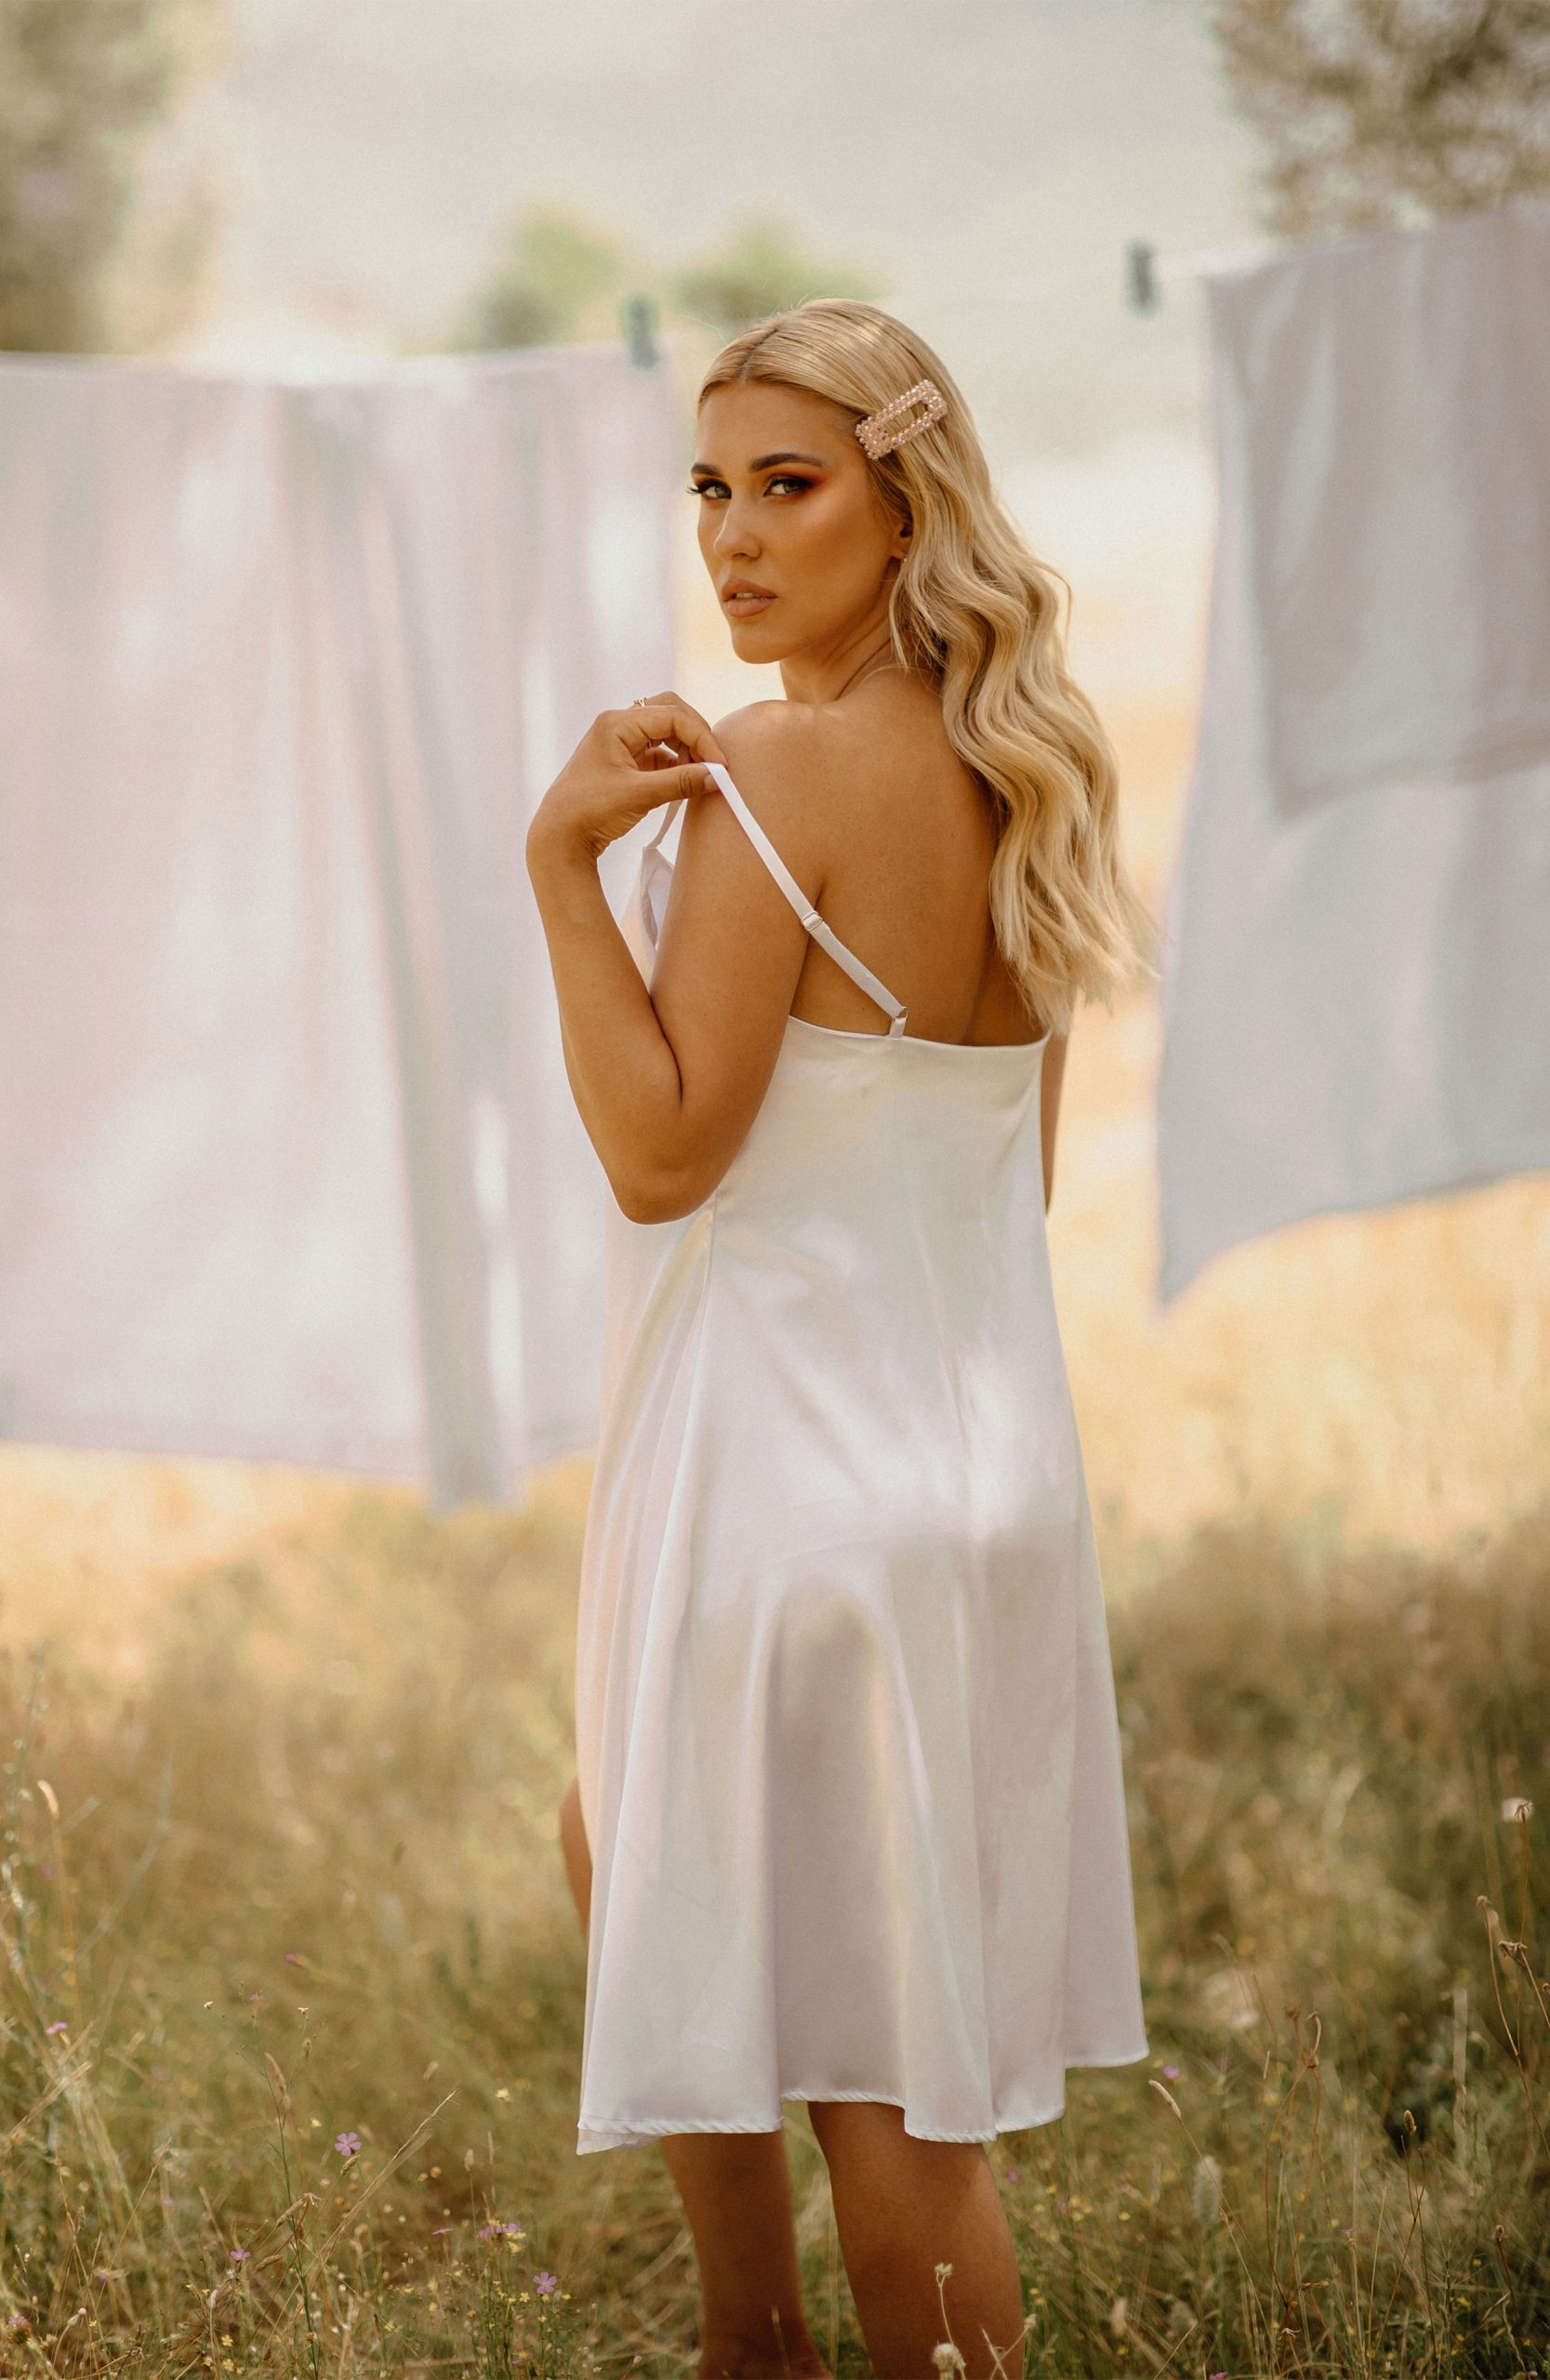 Blonde girl posing for the camera in a field